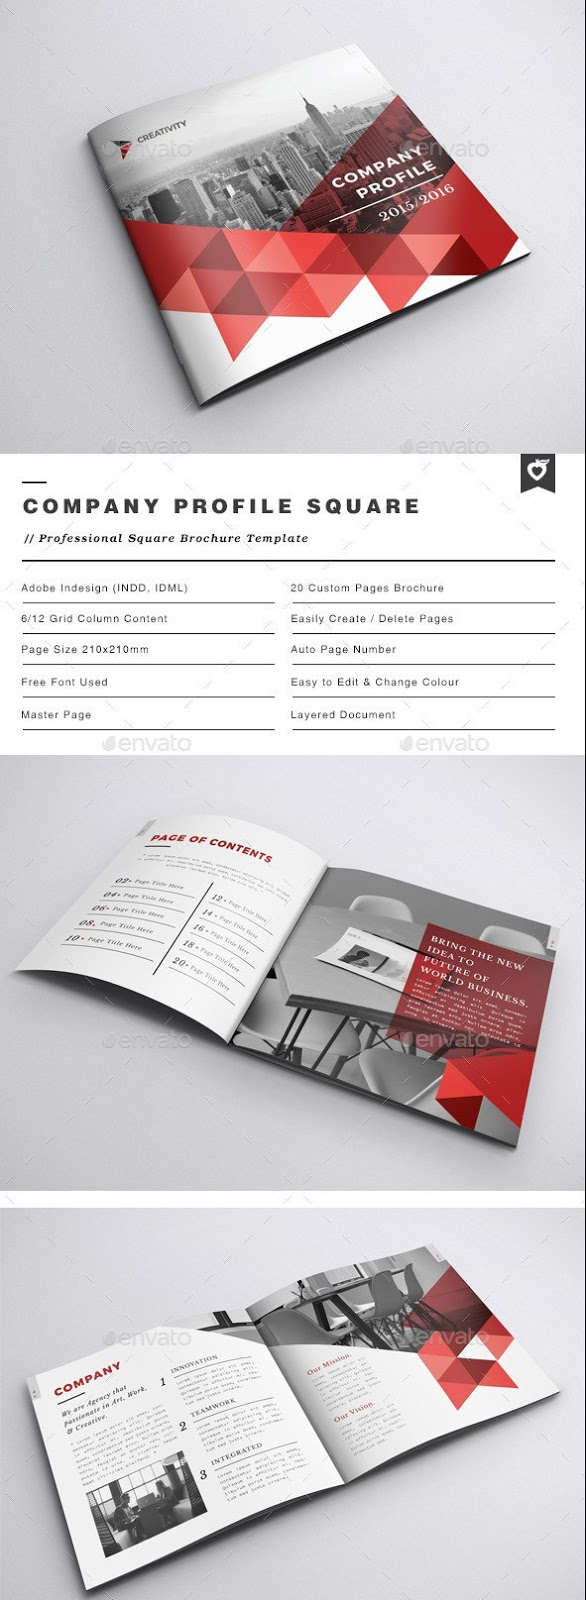 100 free premium brochure templates photoshop psd for 4 column brochure template